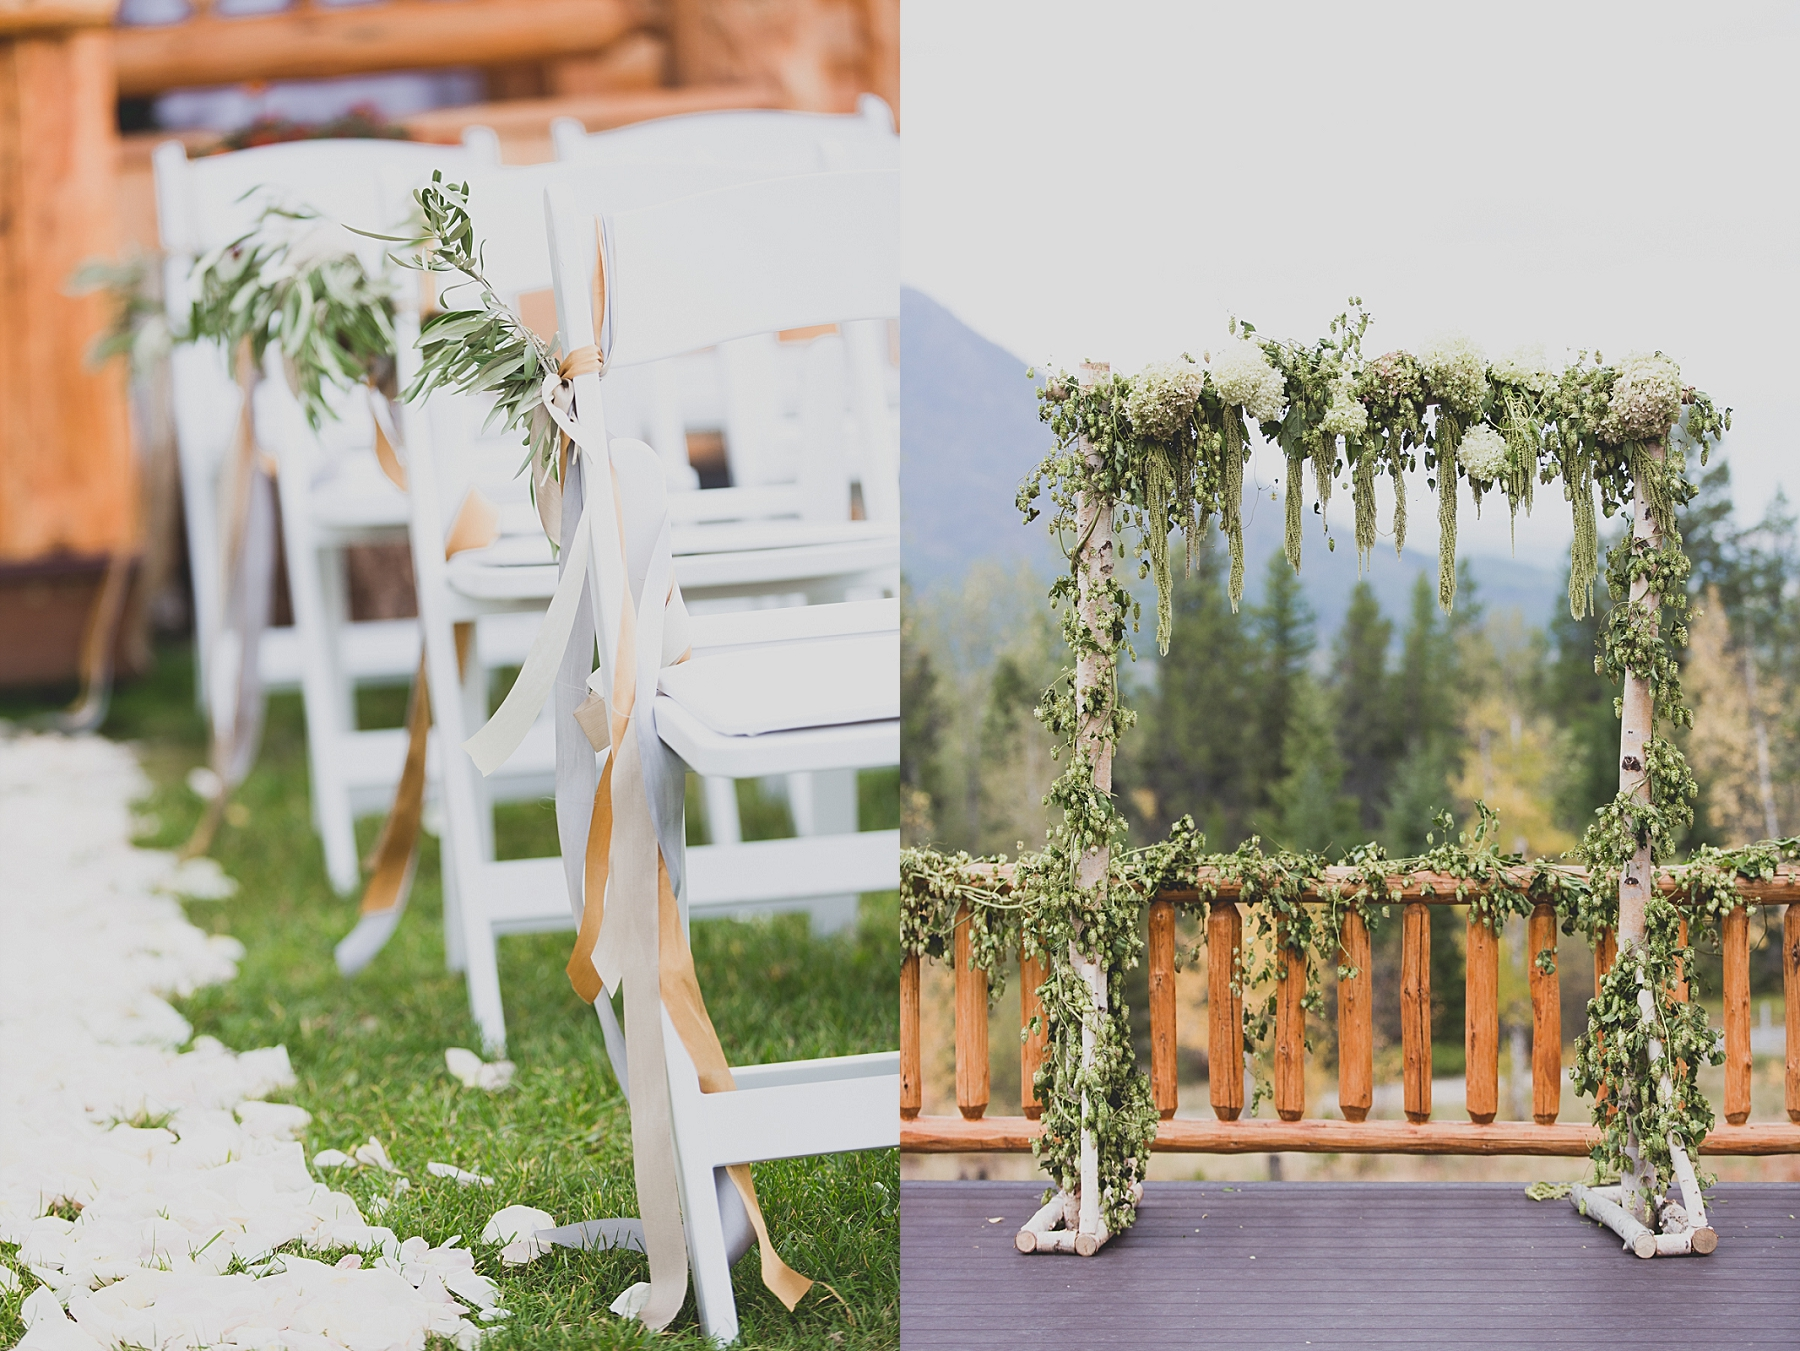 Jennifer_Mooney_Photo_glacier_park_wedding_Beargrass_florals_fall_wedding_elegant_montana_destination_velvet_bride_katie_may_dress_verona_gown_00044.jpg